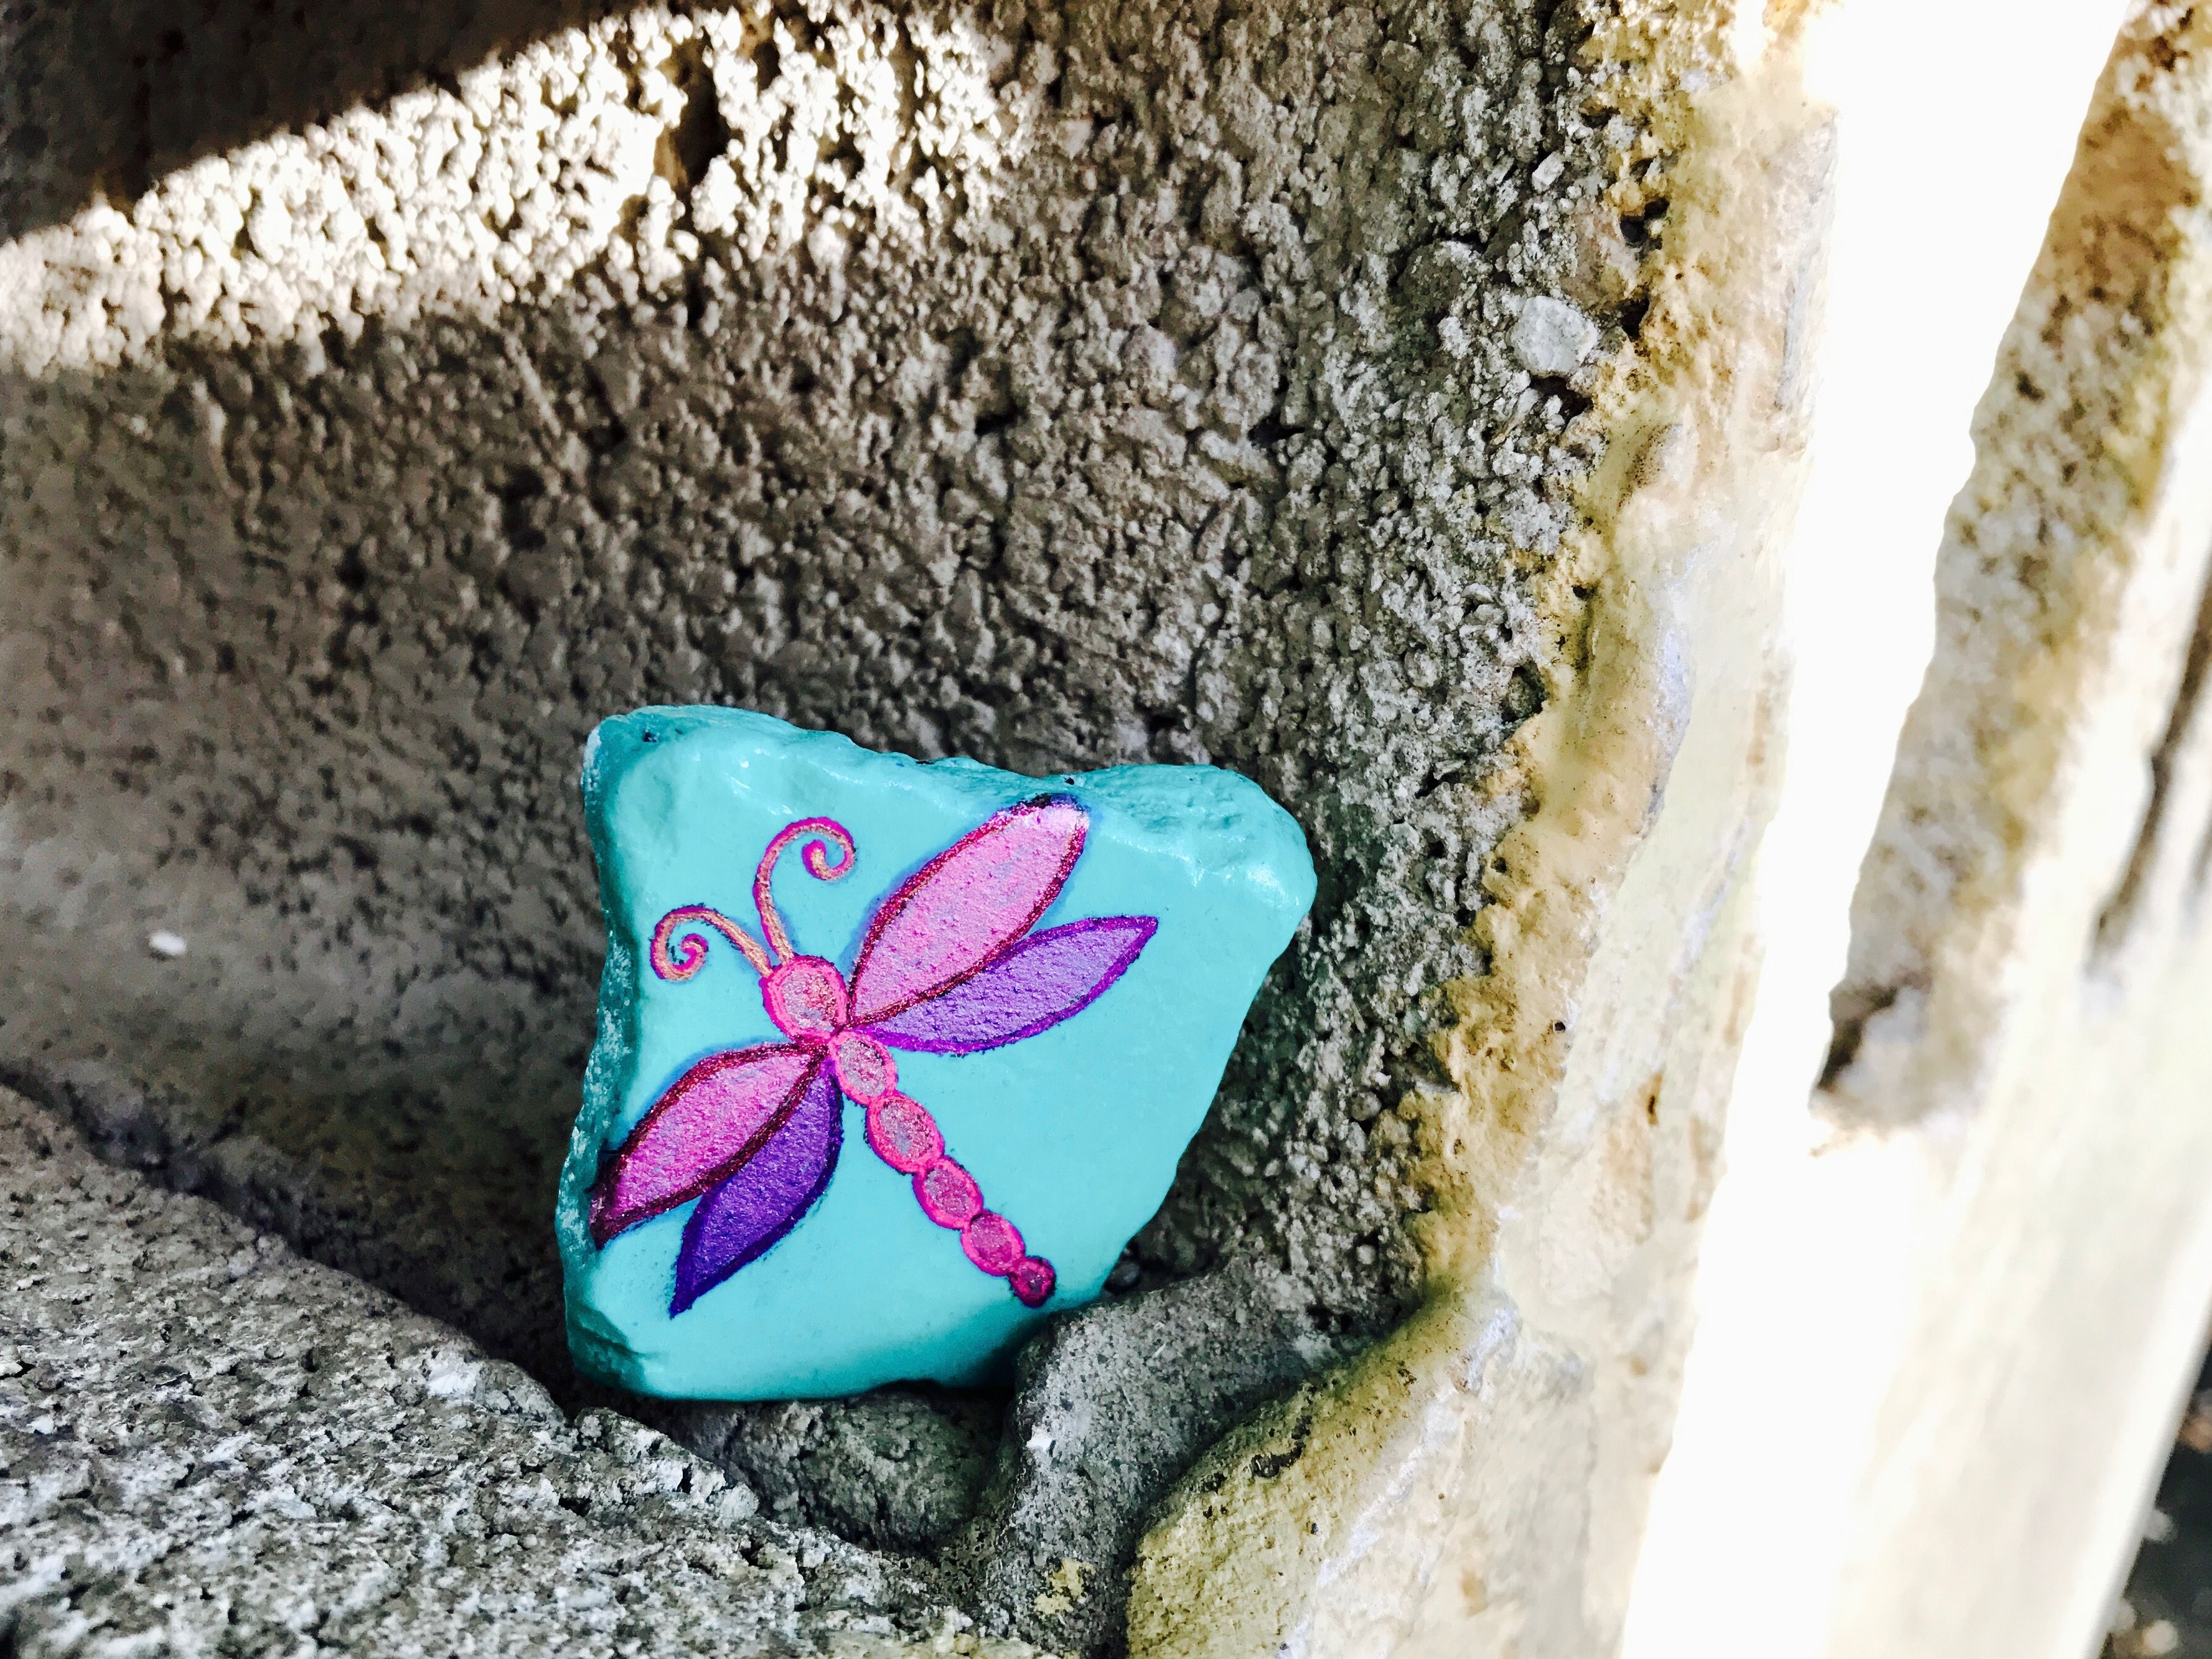 Dragonfly Painted Rock Dragonfly Painting Rock Crafts Painted Rocks